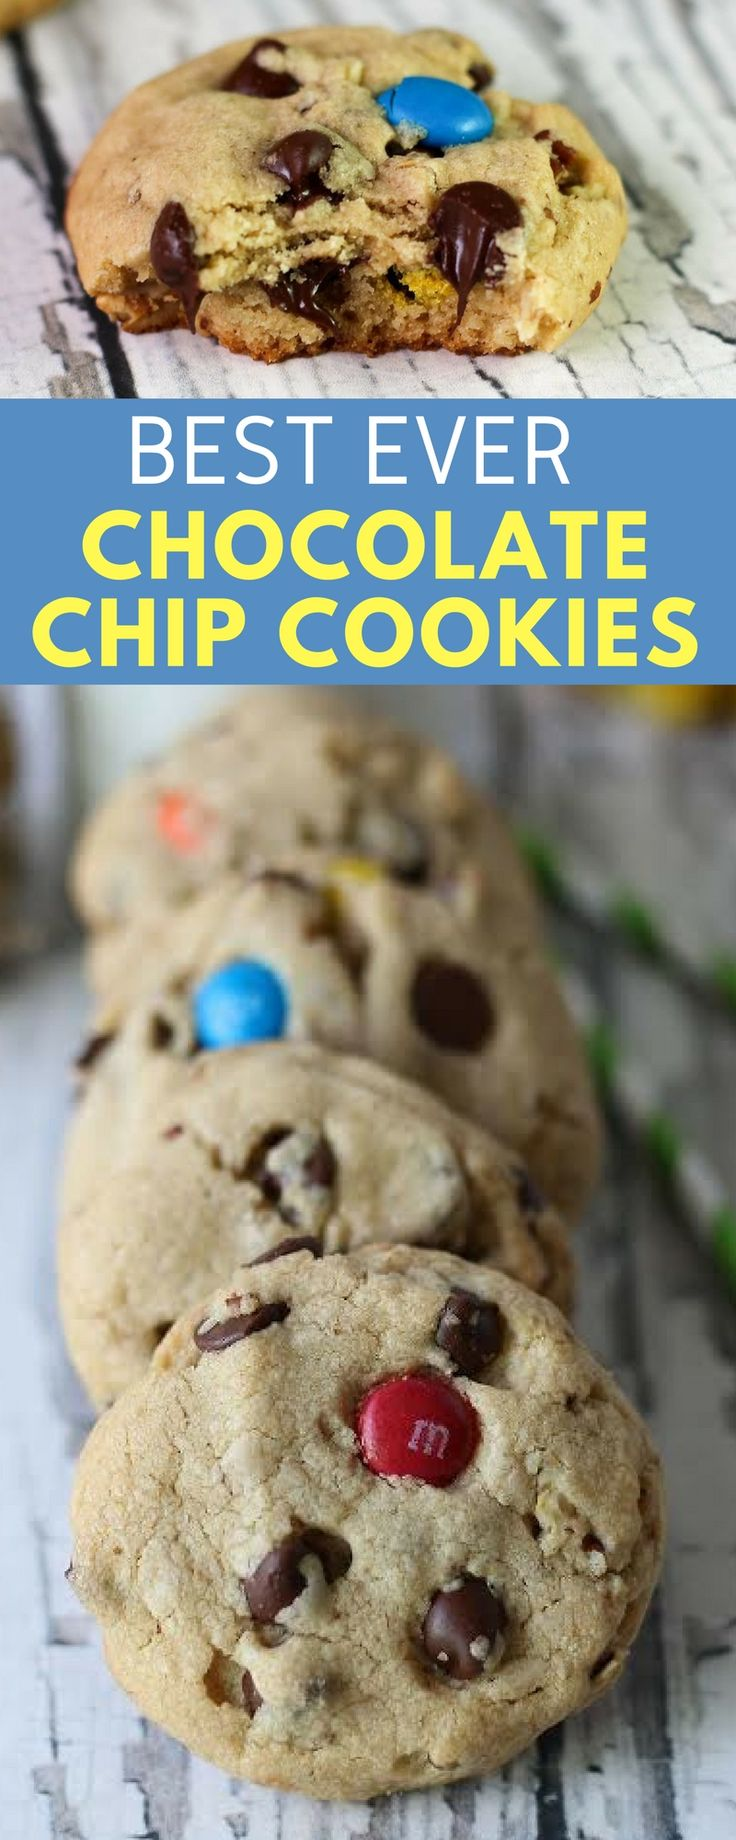 best ever chocolate chip cookies recipe! #chocolatechip #chocolatechipcookies #cookies #cookie